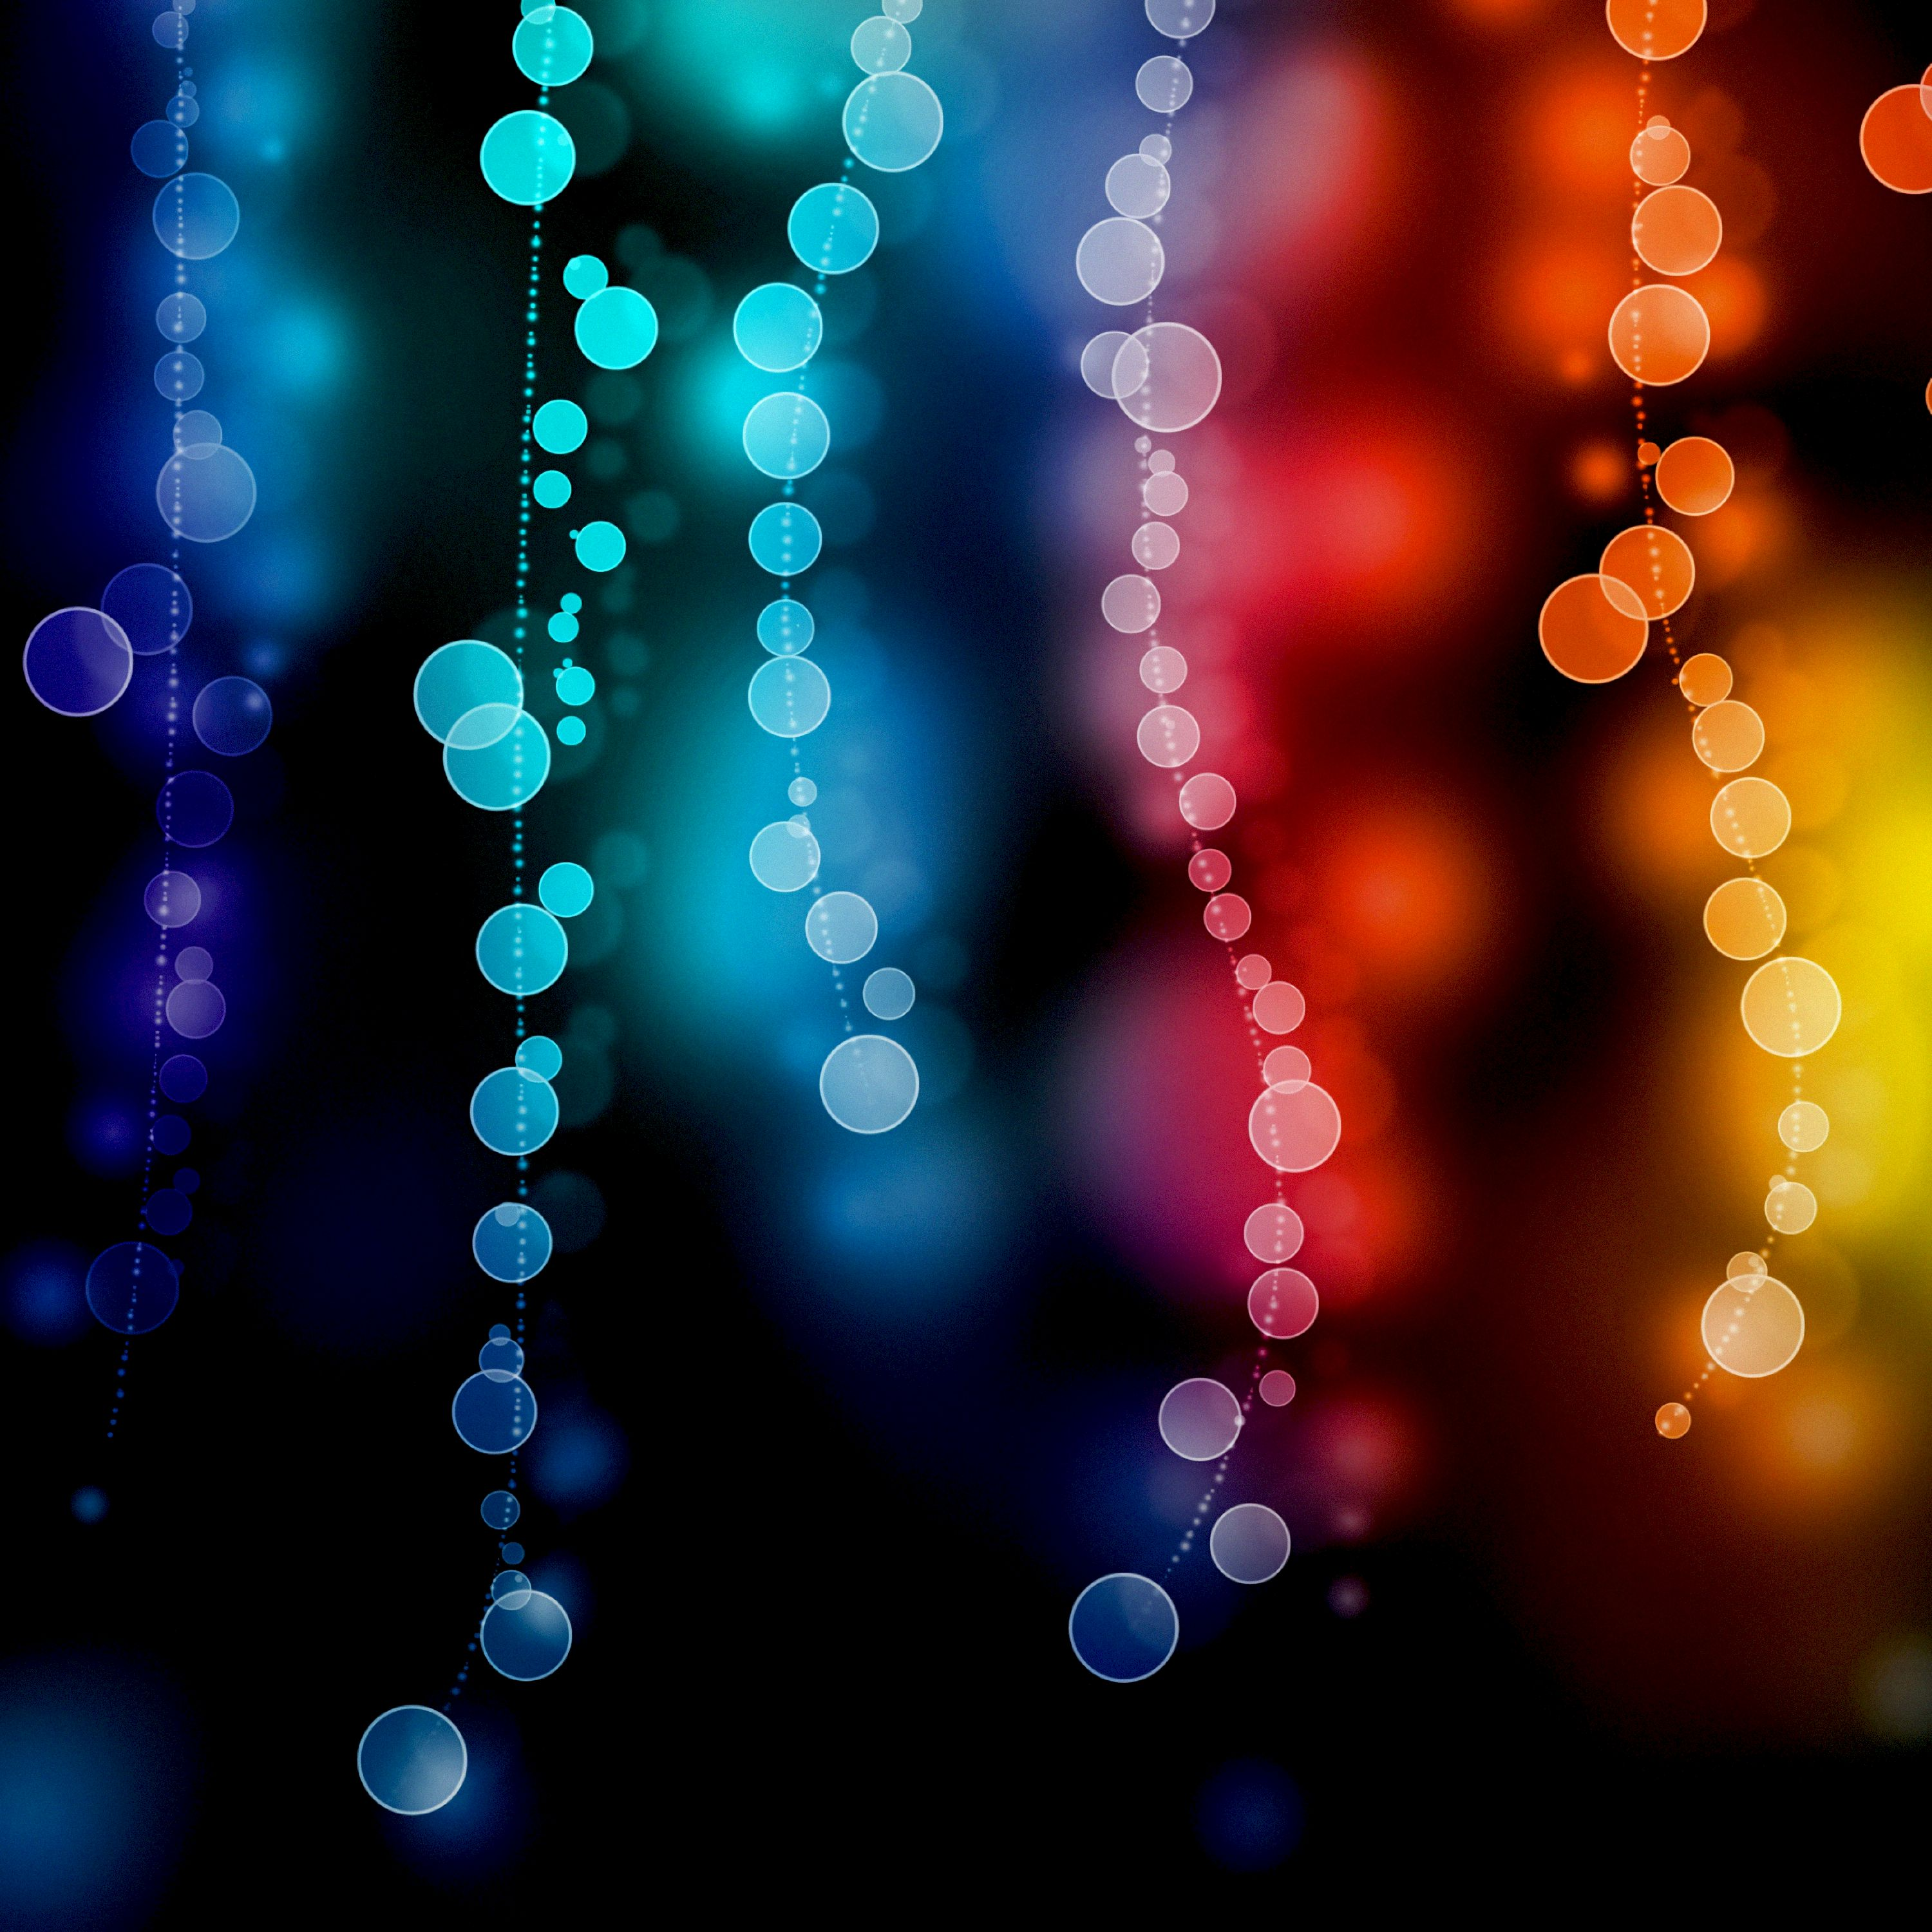 120269 free wallpaper 720x1520 for phone, download images Abstract, Glare, Circles, Multicolored, Motley, Blur, Smooth, Bokeh, Boquet 720x1520 for mobile